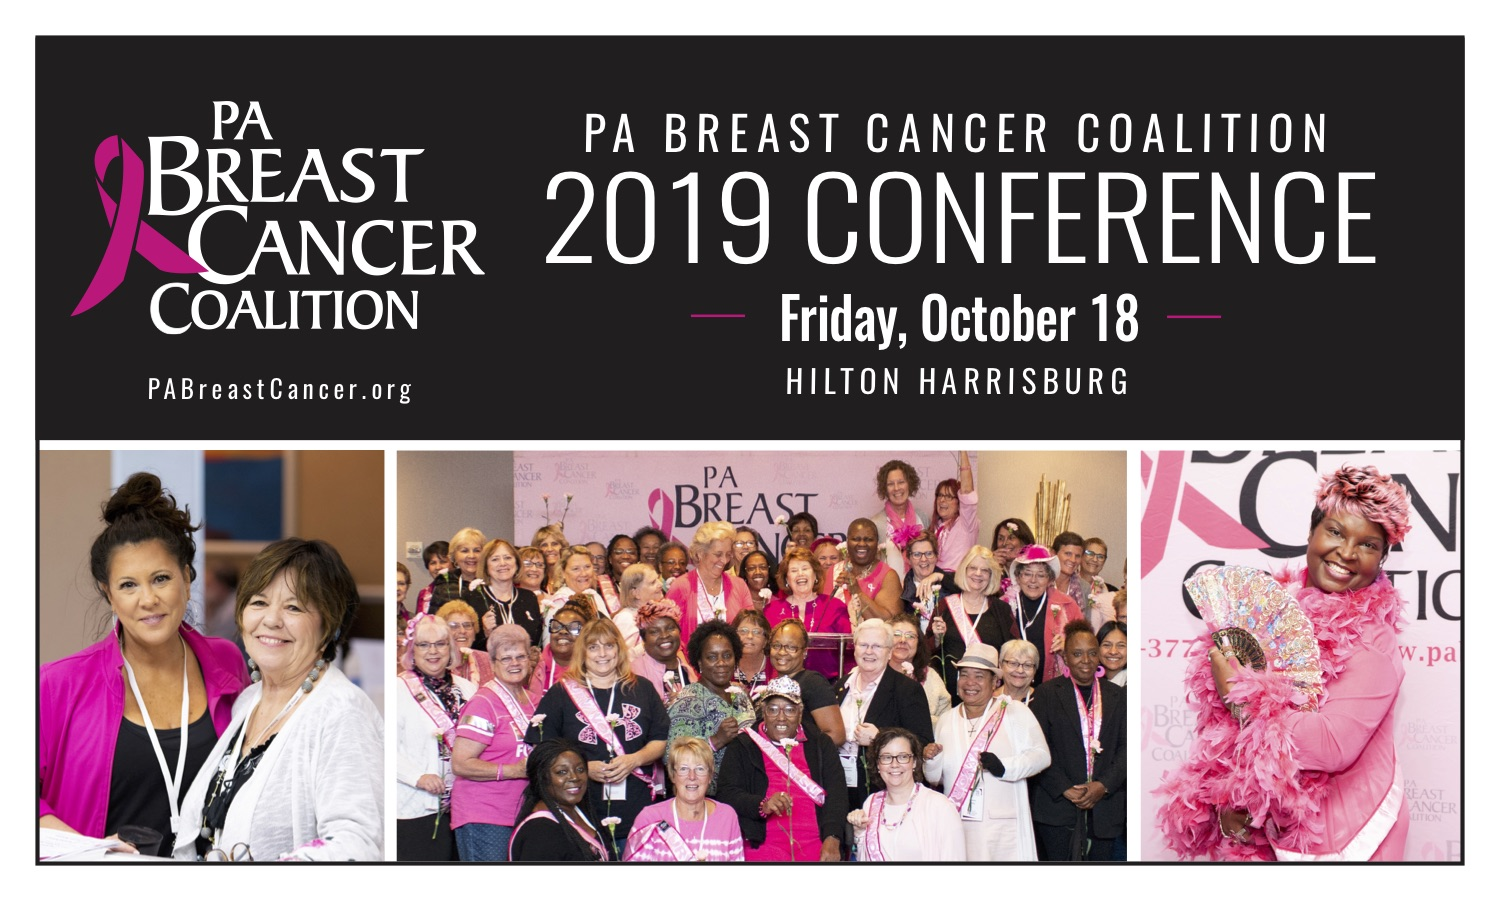 PBCC Conference - PA Breast Cancer Coalition